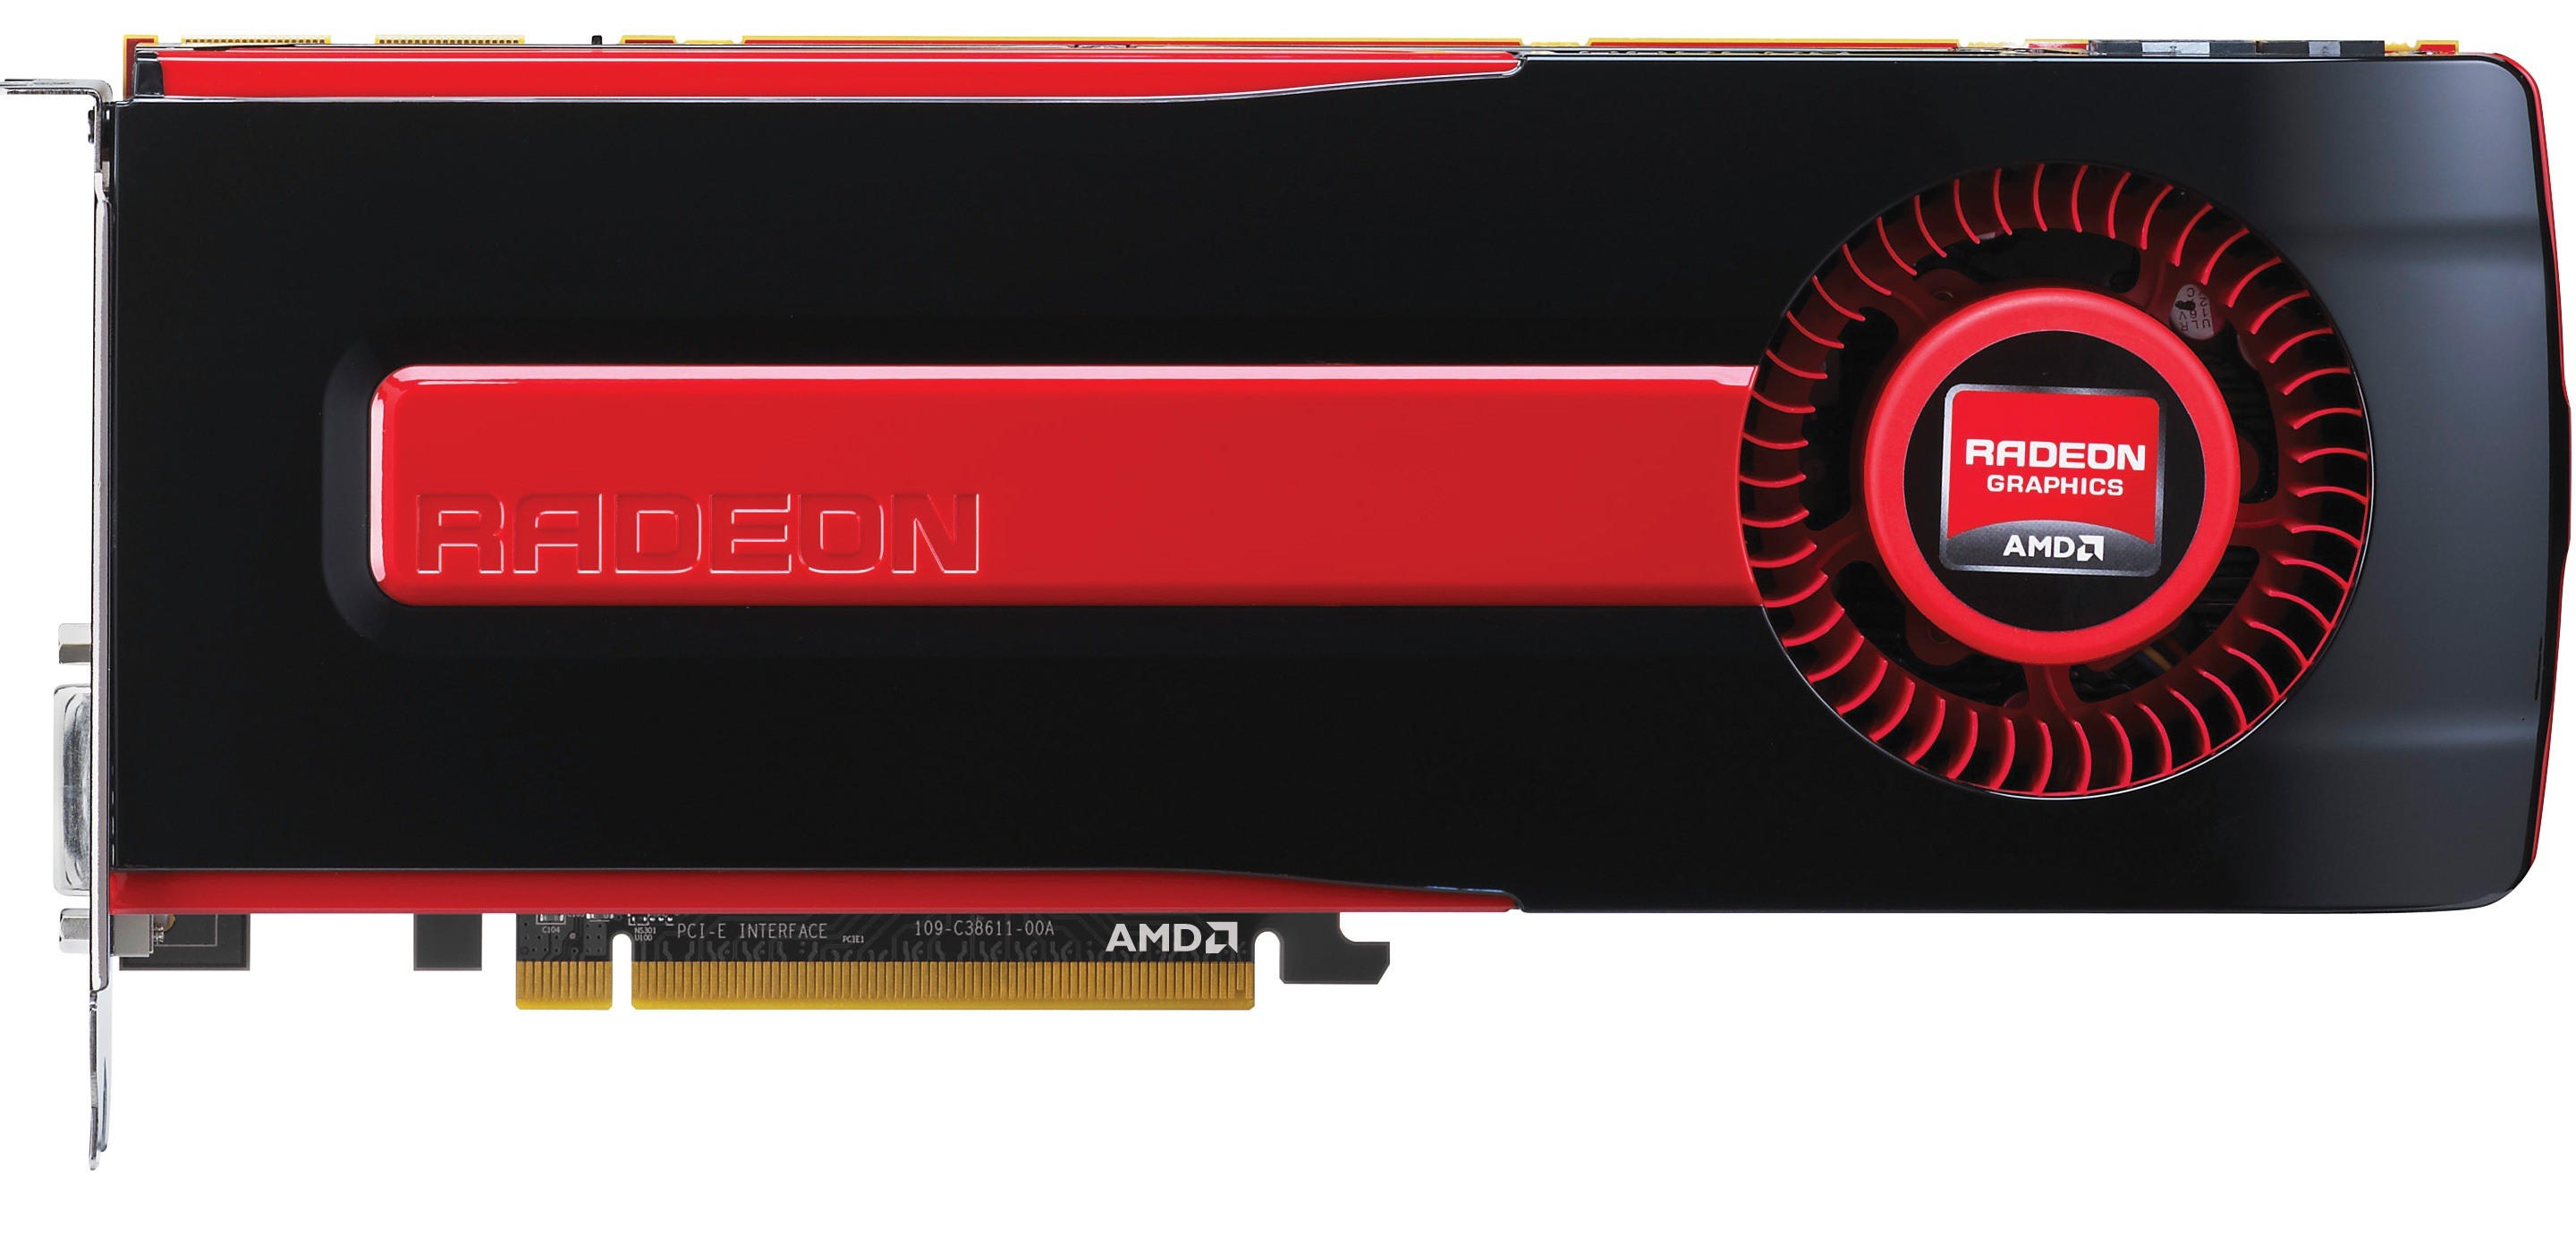 AMD 7970s Now For Sale